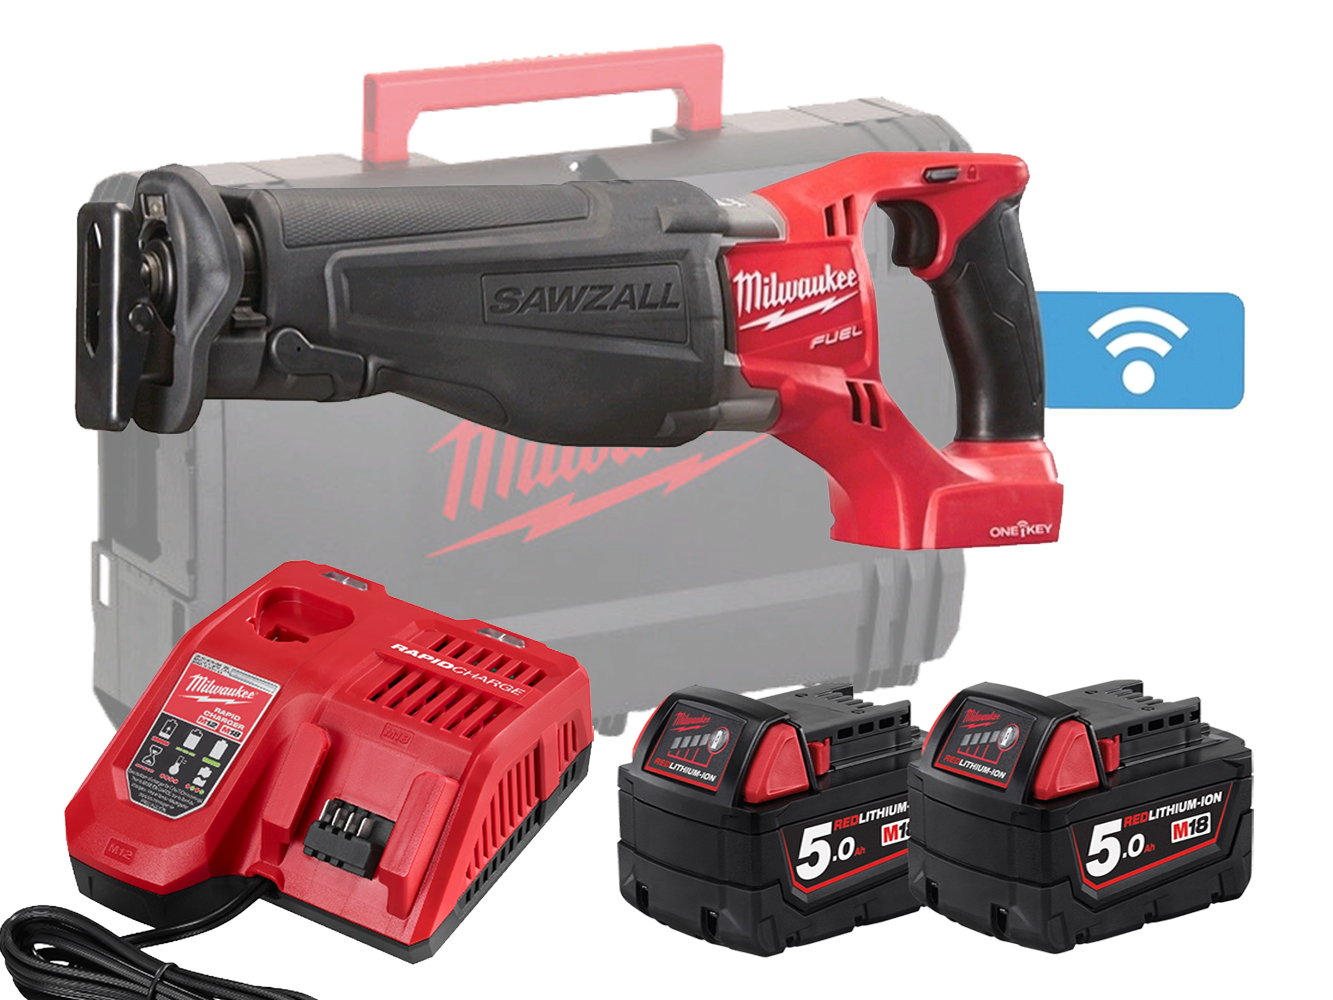 Milwaukee M18ONESX 18V Fuel One-Key Sawzall (Reciprocating Saw) - 5.0Ah Pack